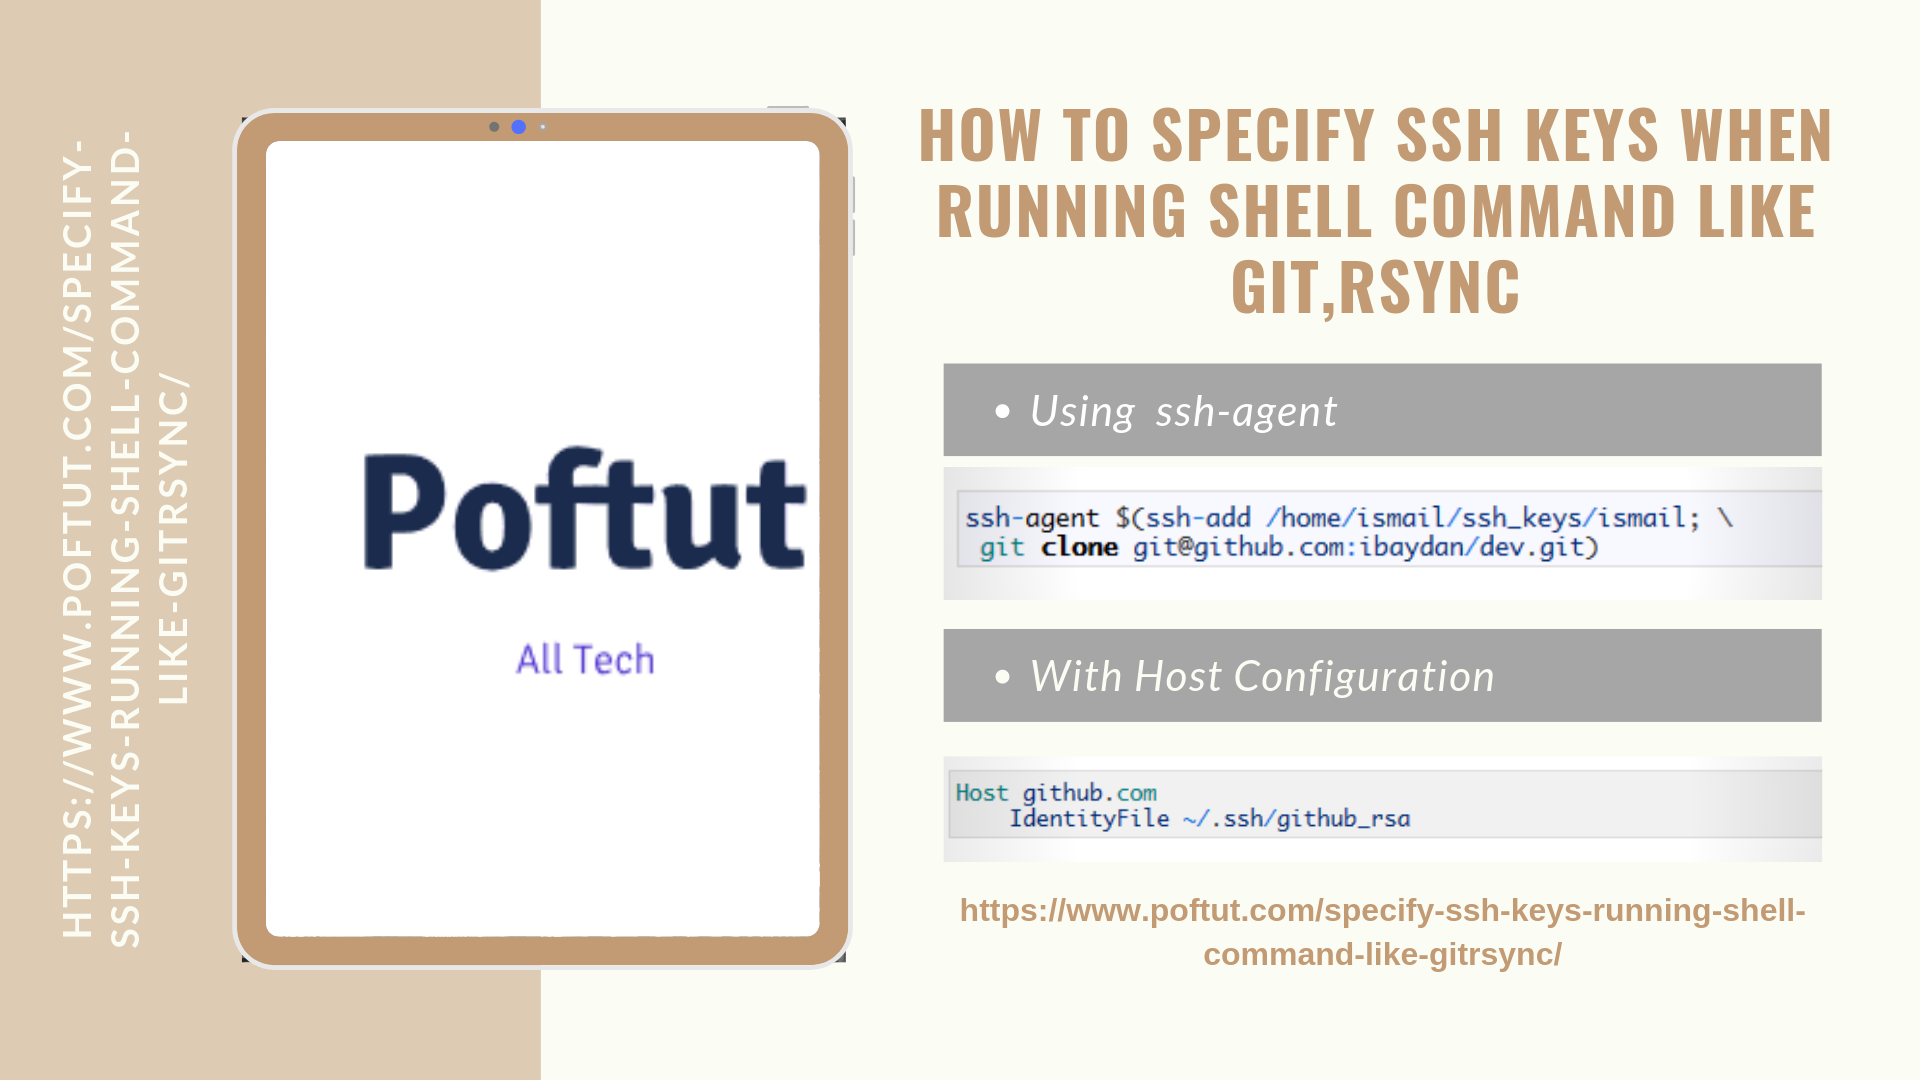 How To Specify Ssh Keys When Running Shell Command Like Git,Rsync